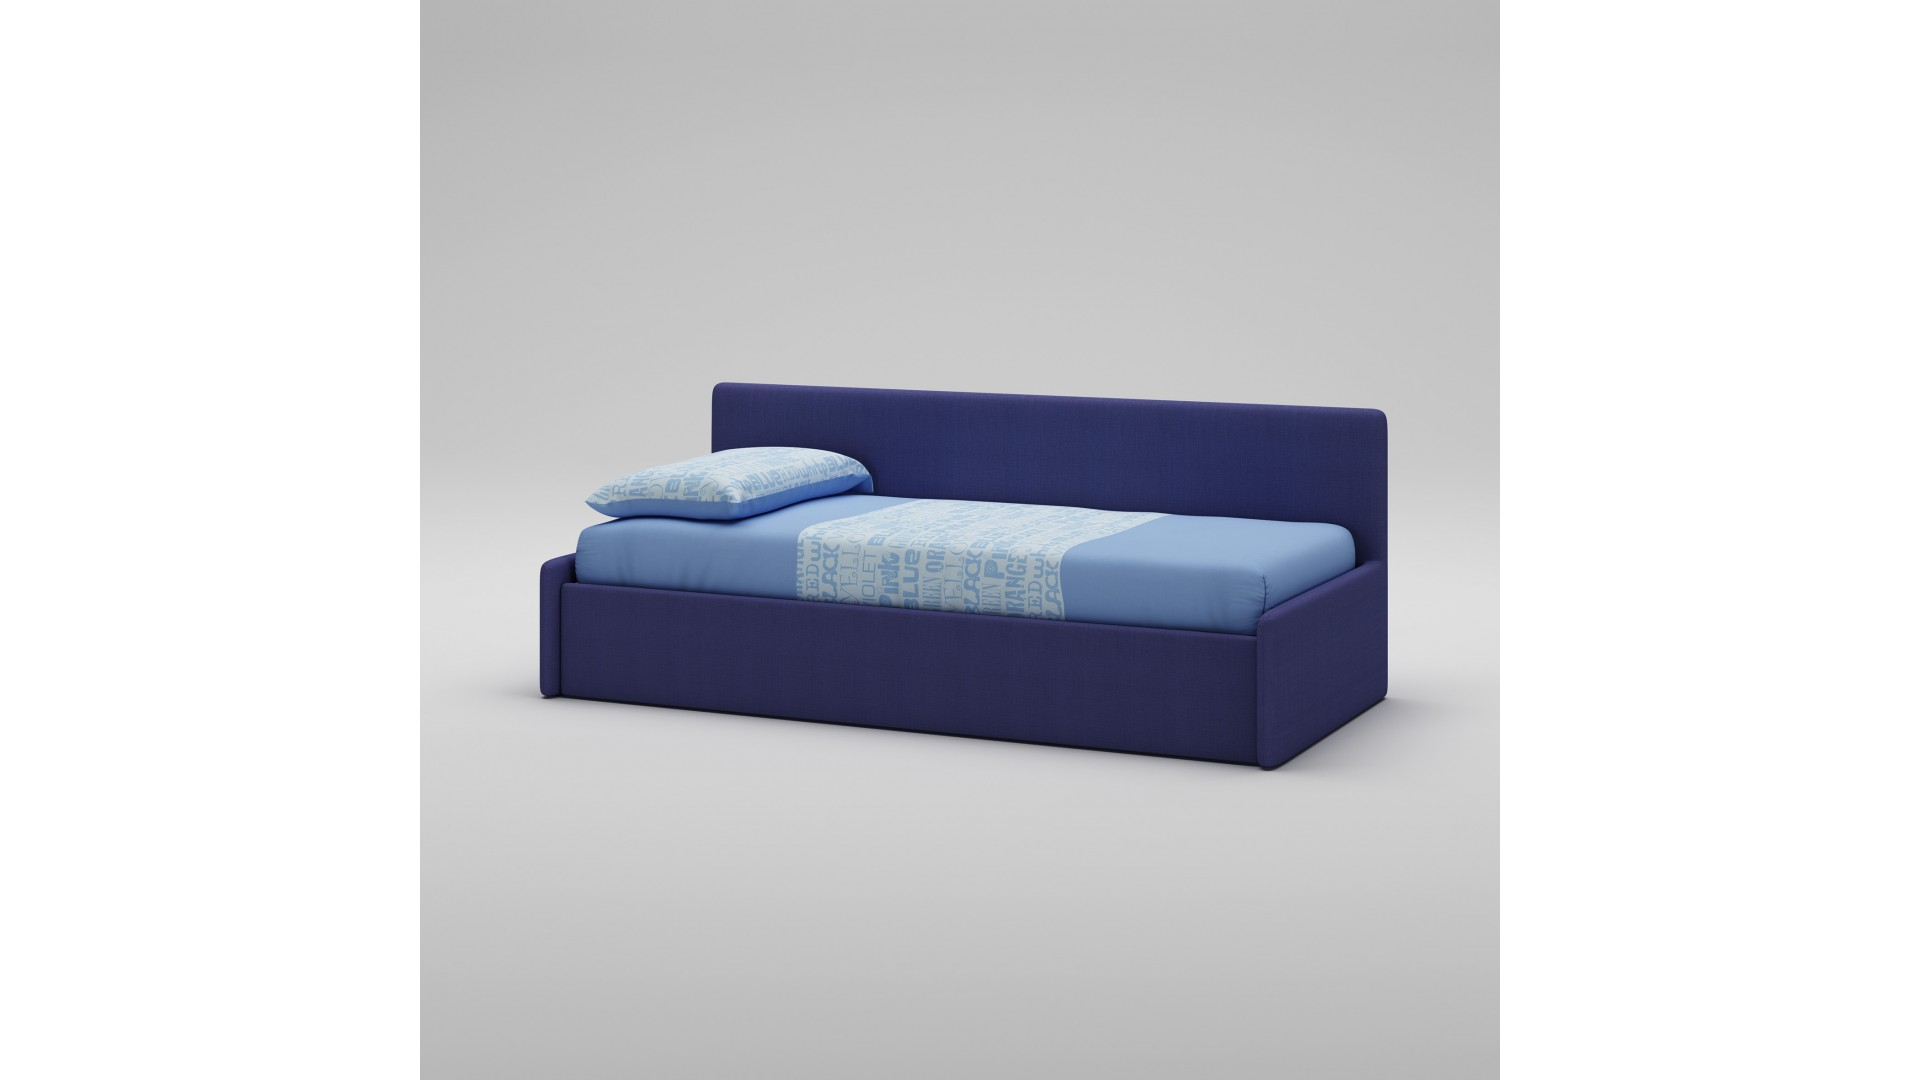 lit canap recouvert de tissu couleur bleu moretti compact so nuit. Black Bedroom Furniture Sets. Home Design Ideas